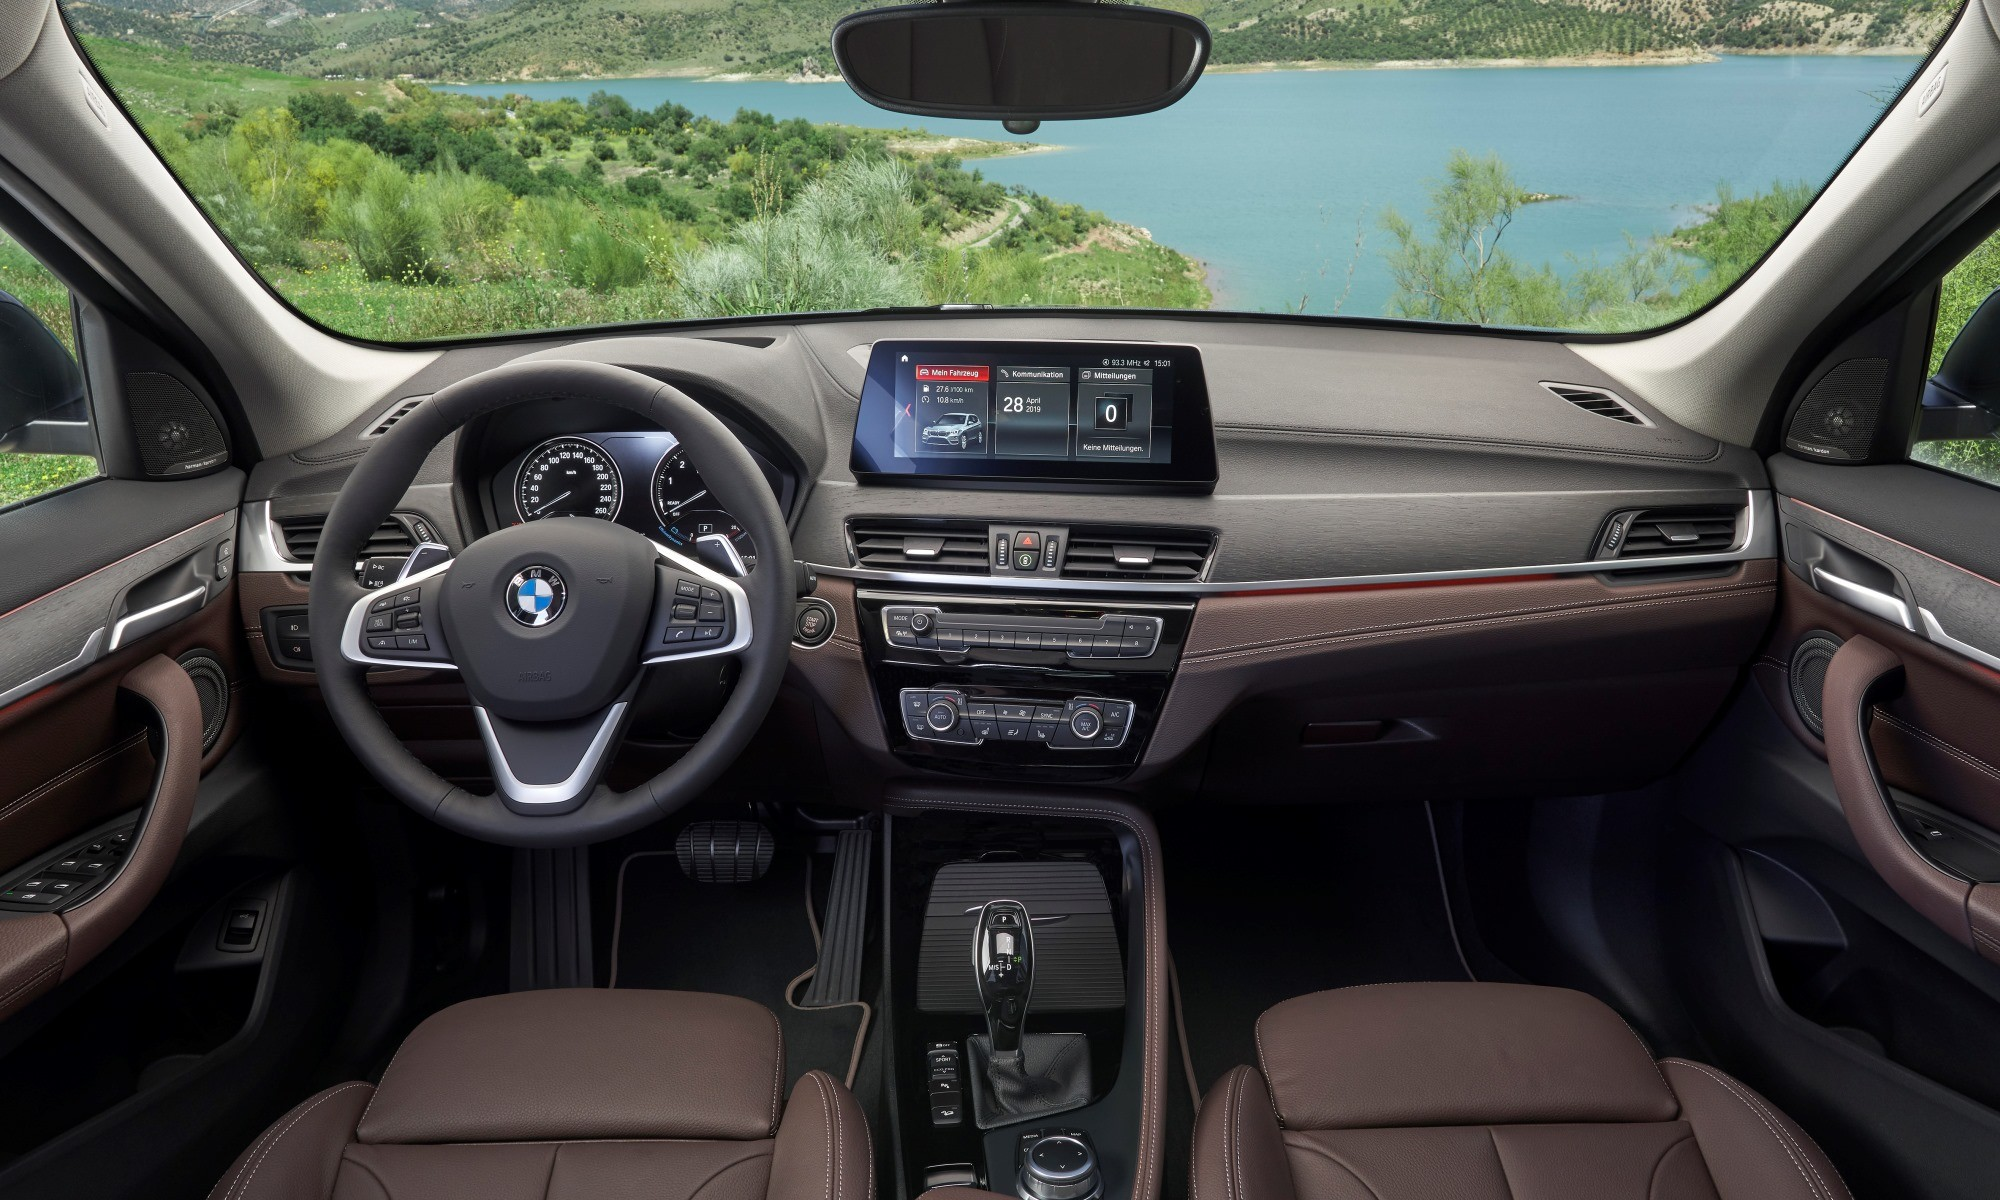 New BMW X1 interior